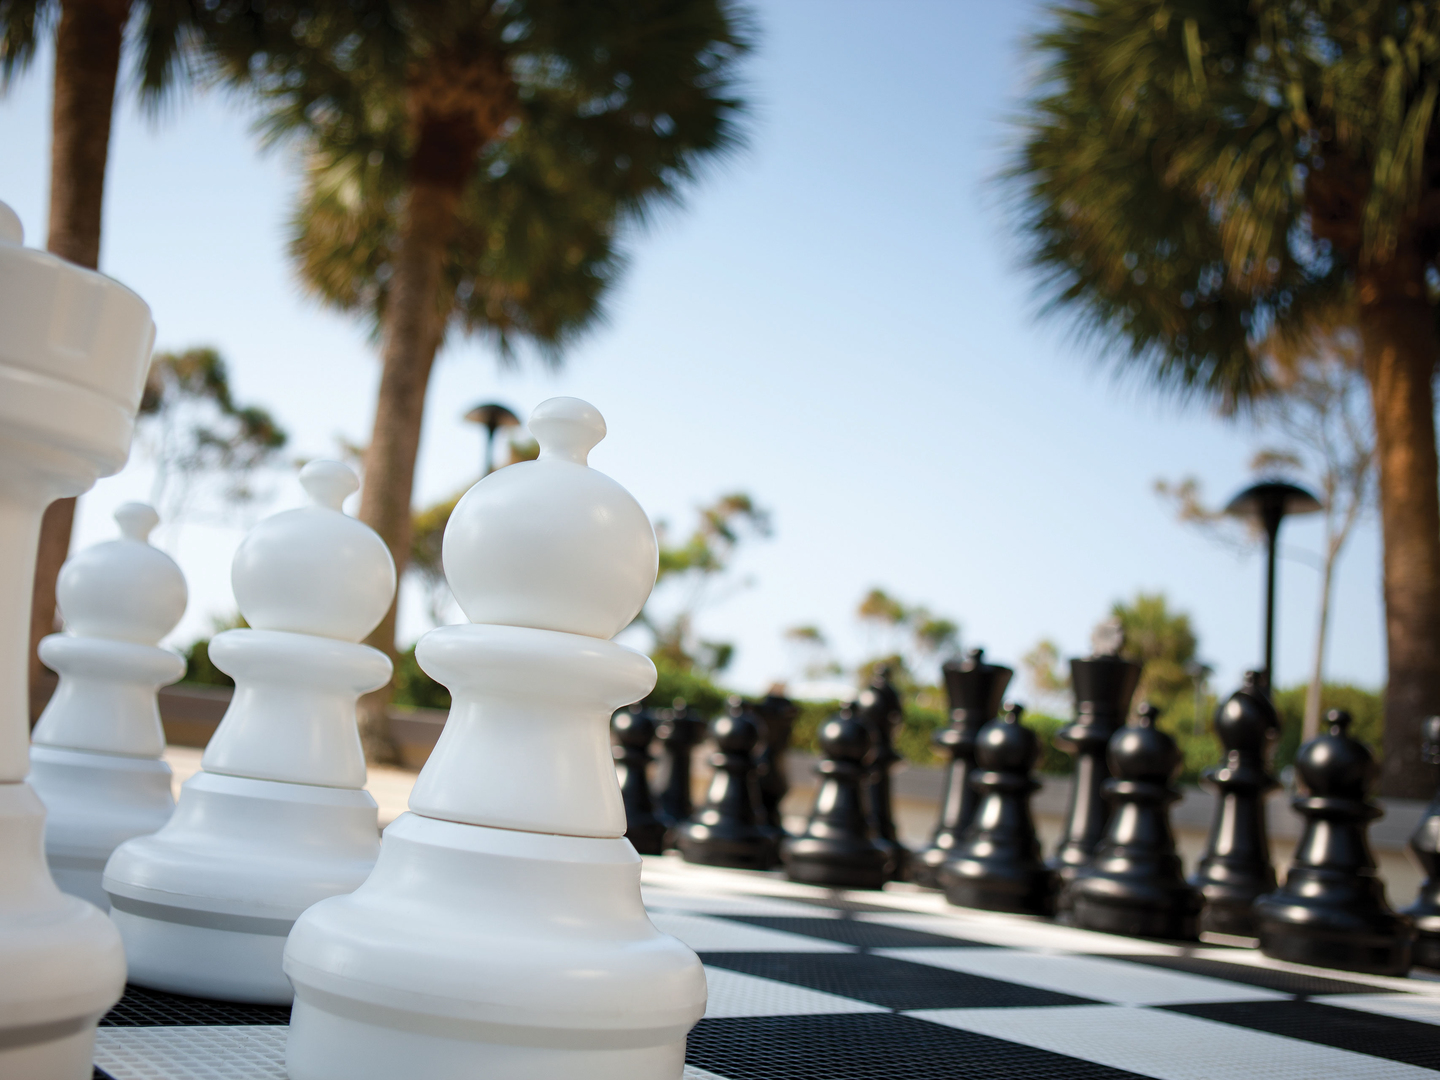 Marriott's Monarch Chess. Marriott's Monarch is located in Hilton Head Island, South Carolina United States.